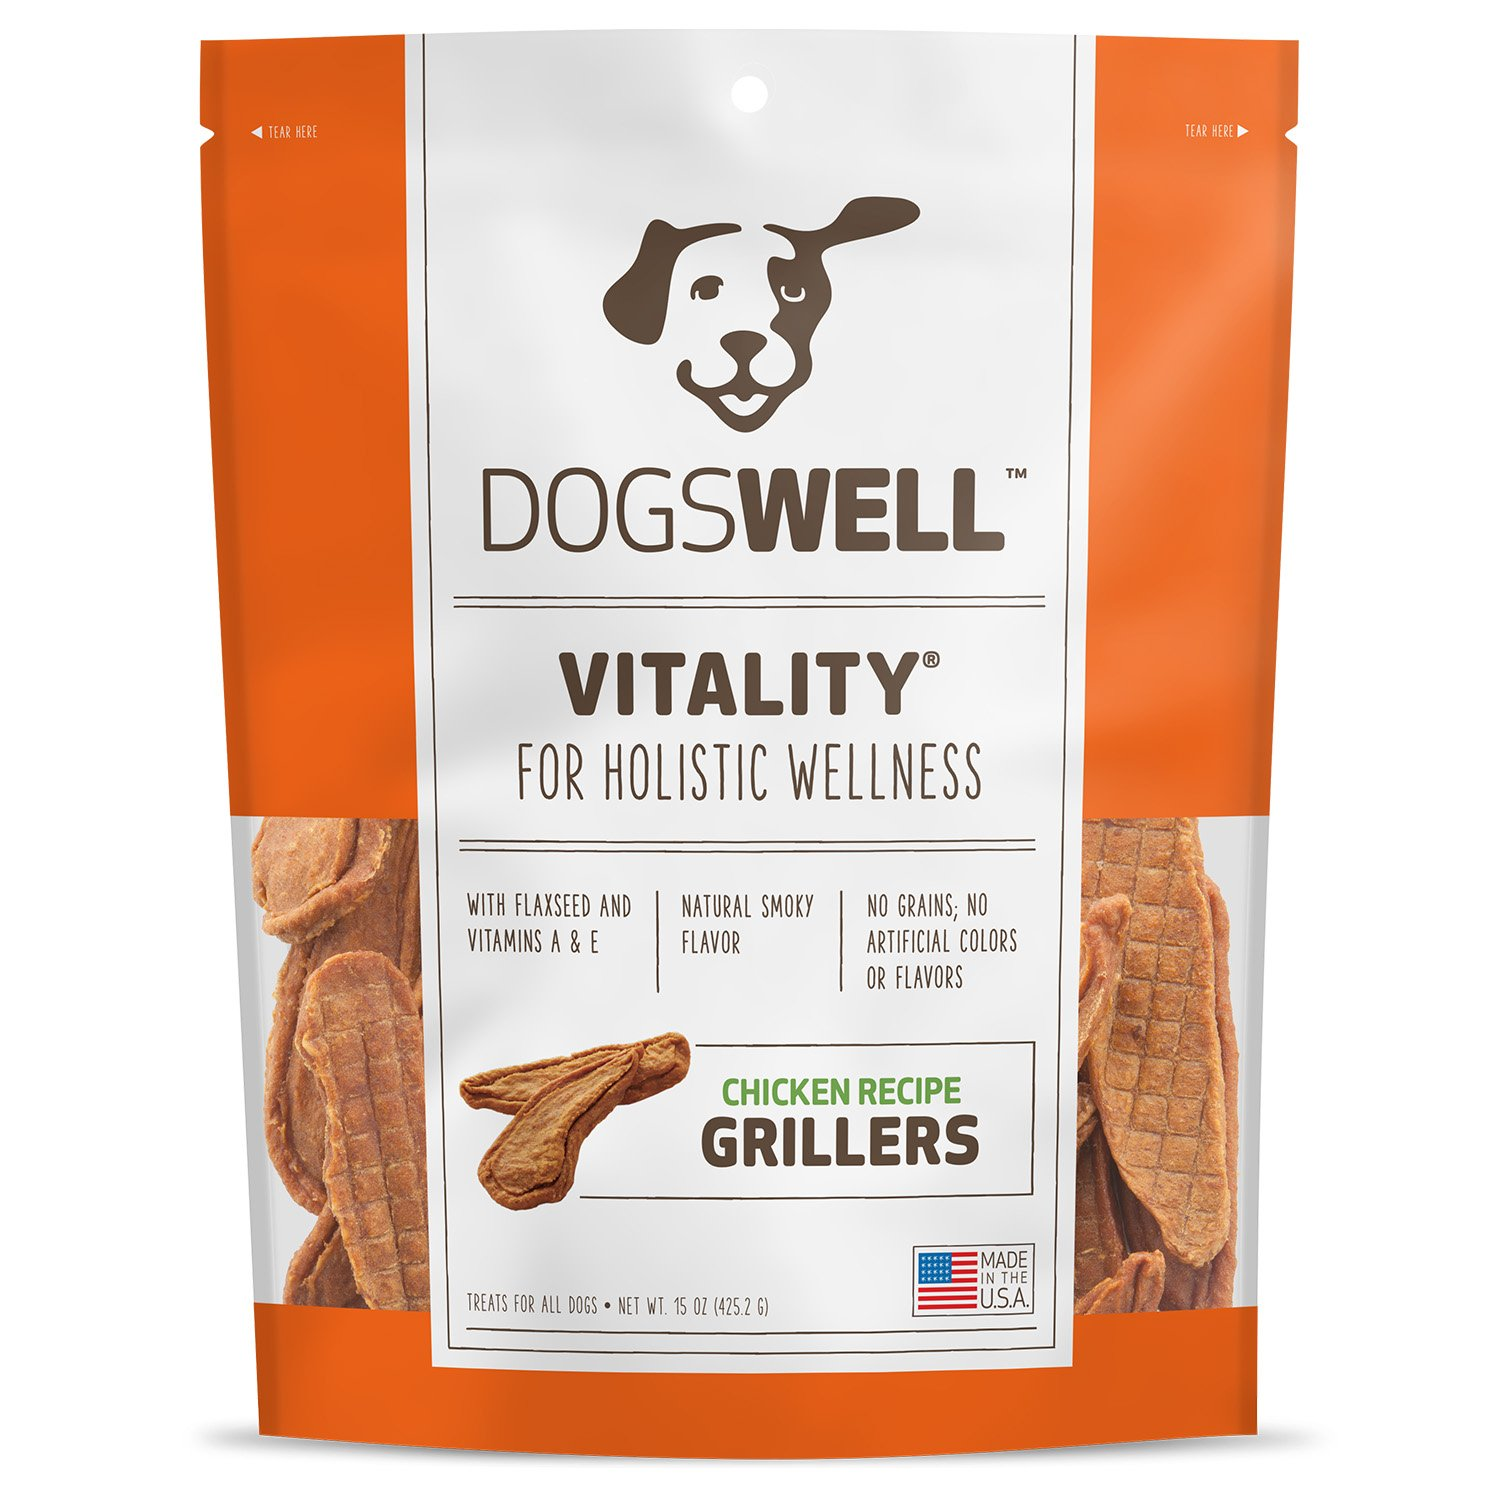 Dogswell Vitality Grillers Chicken Tenders Dog Treats